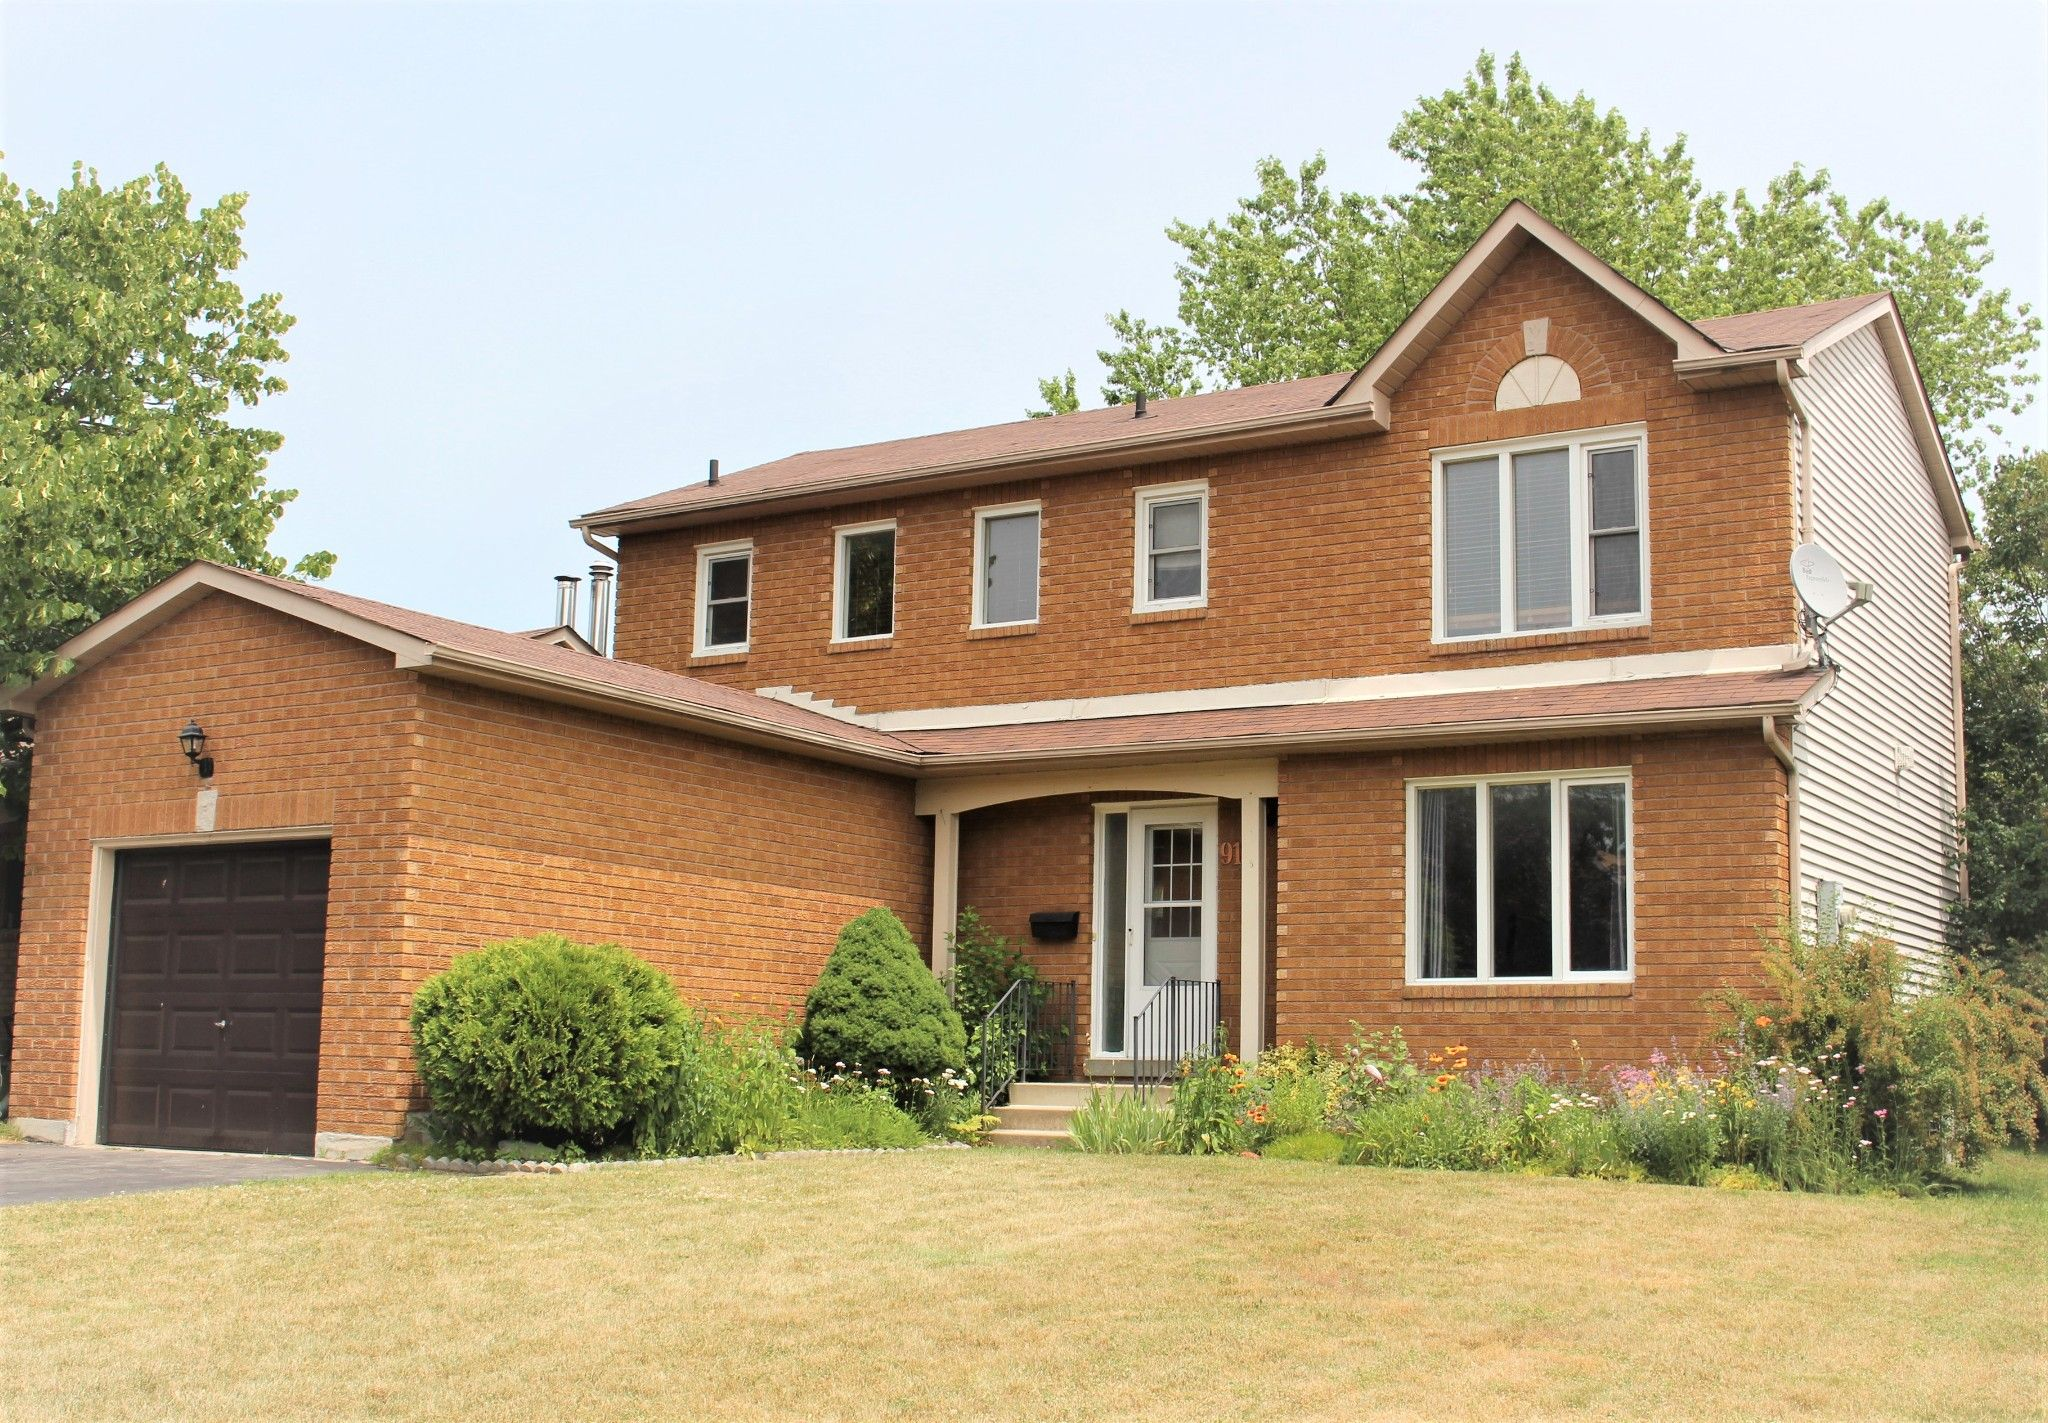 Main Photo: 910 Cornell Cres in Cobourg: House for sale : MLS®# 207624